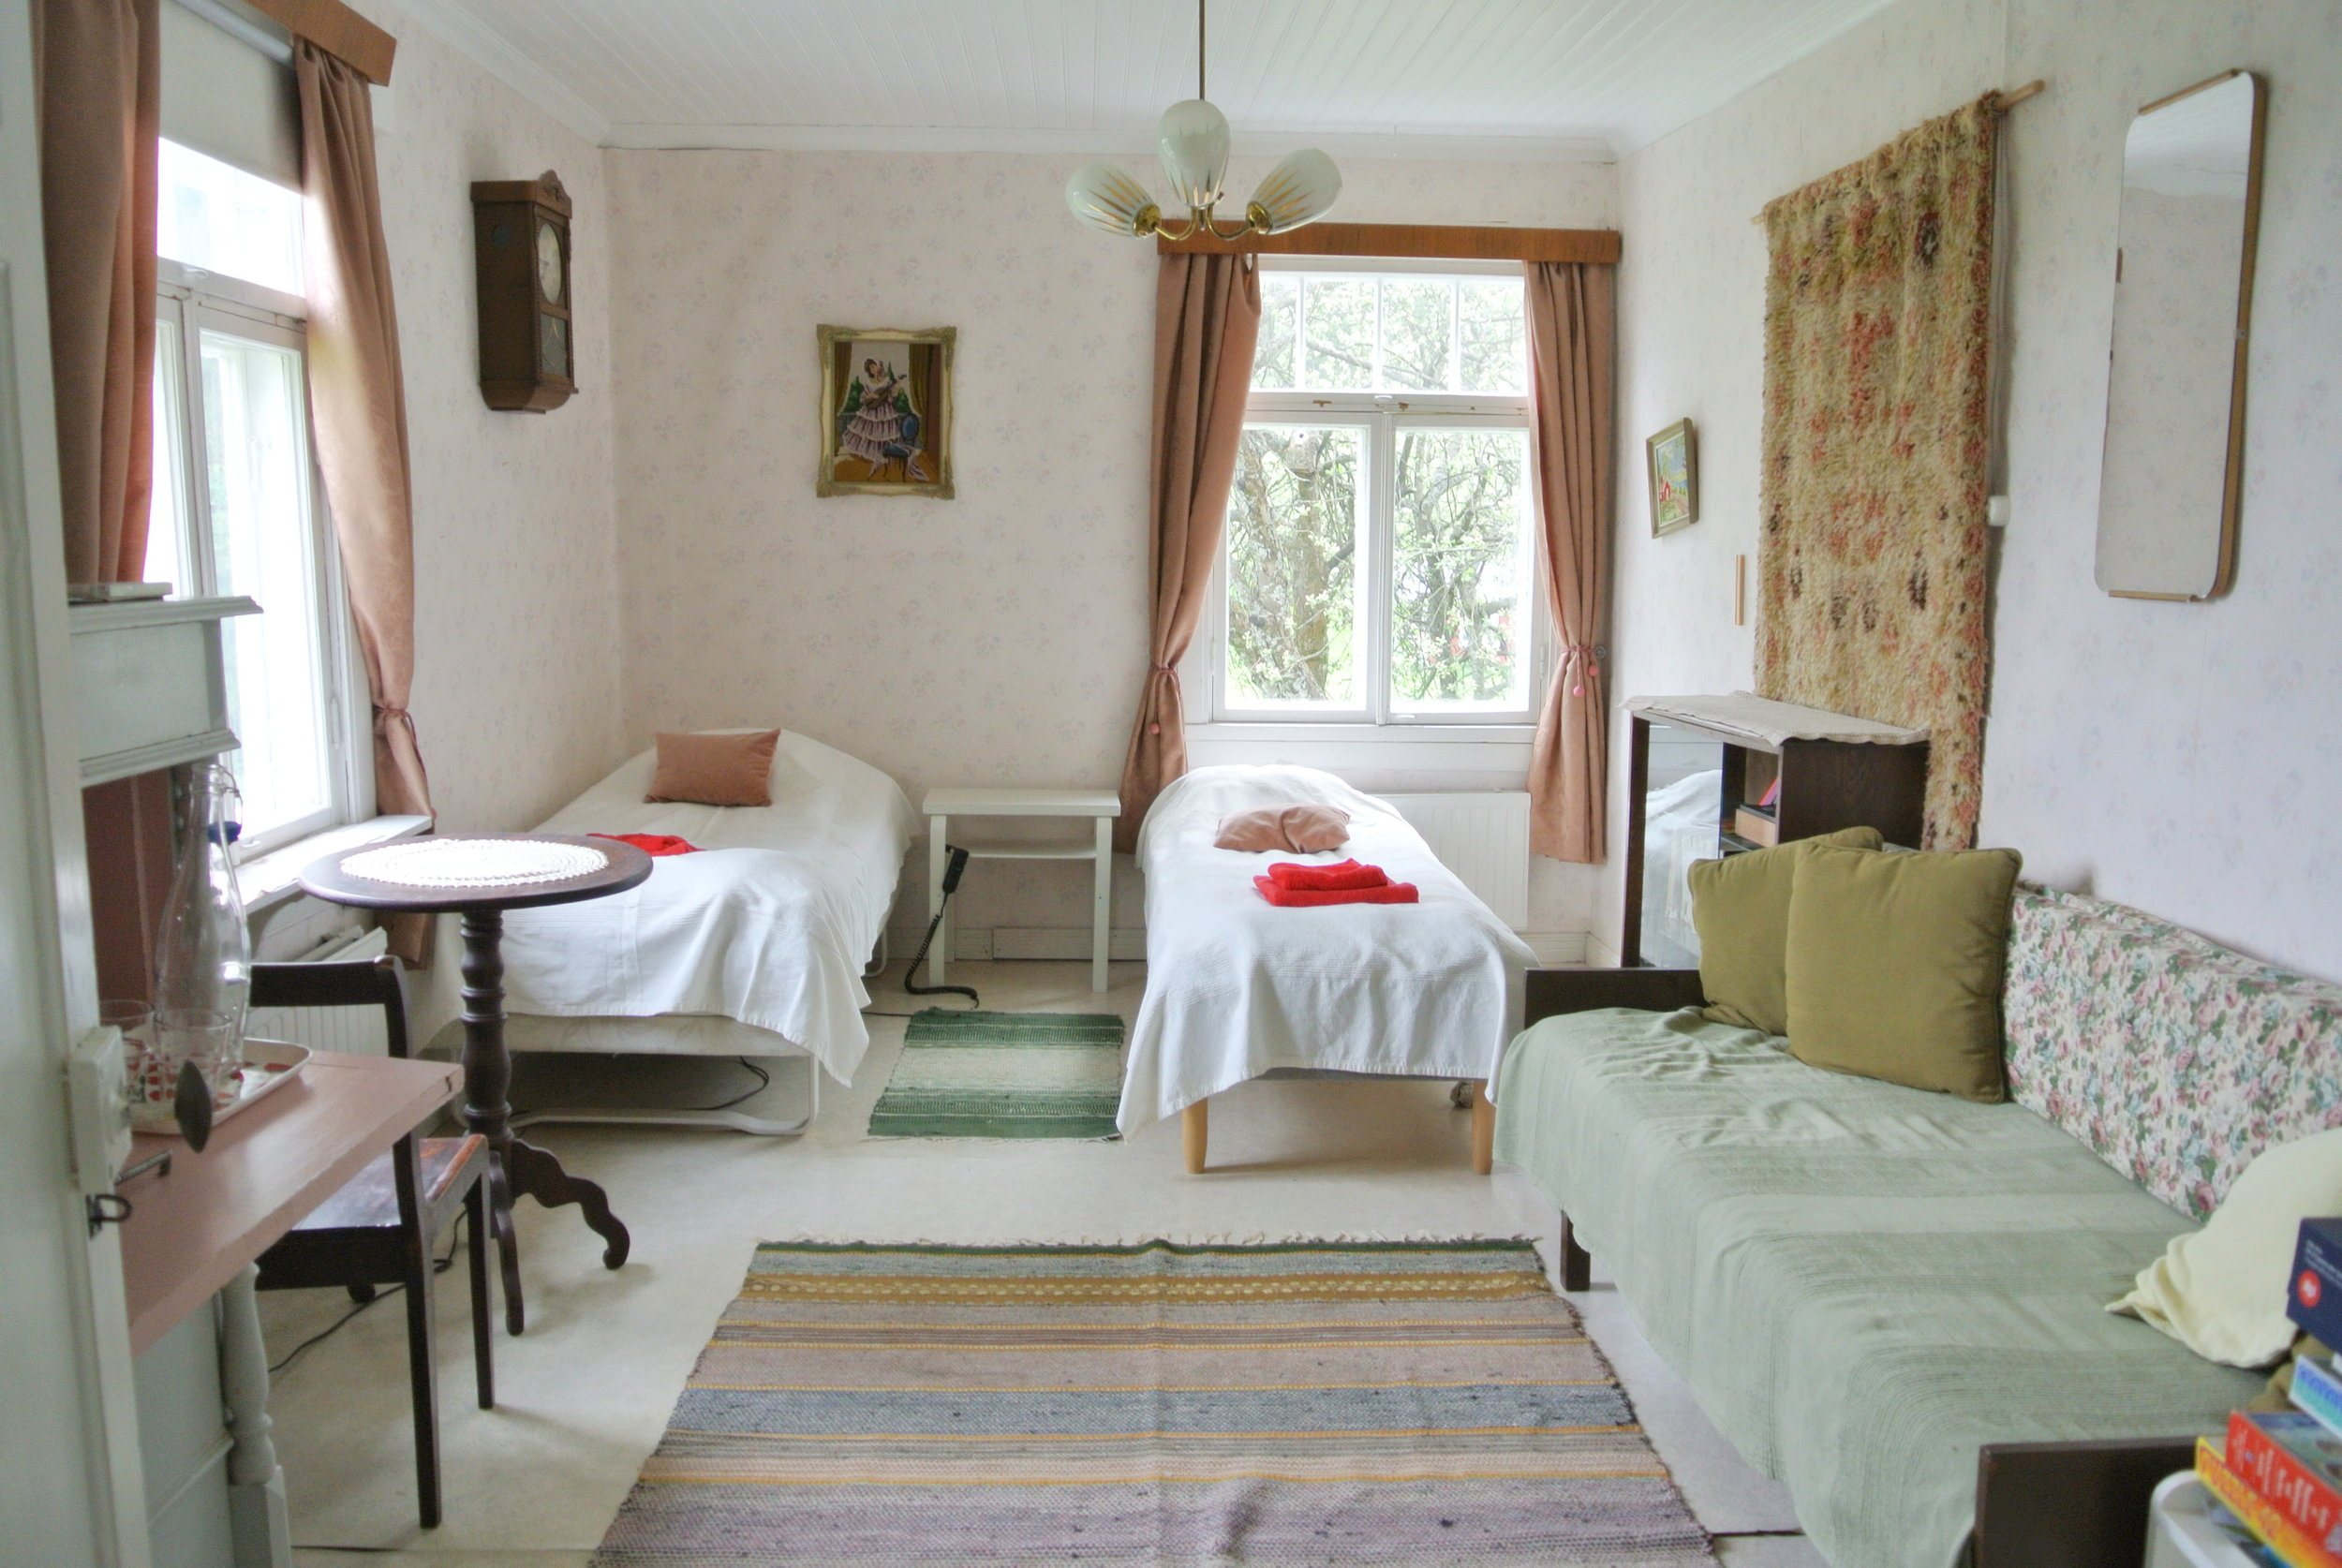 Radio room - The room has twin beds and an extra bed. The room has a view of a garden full of apple trees. Pets are allowed in the Radio room.The name